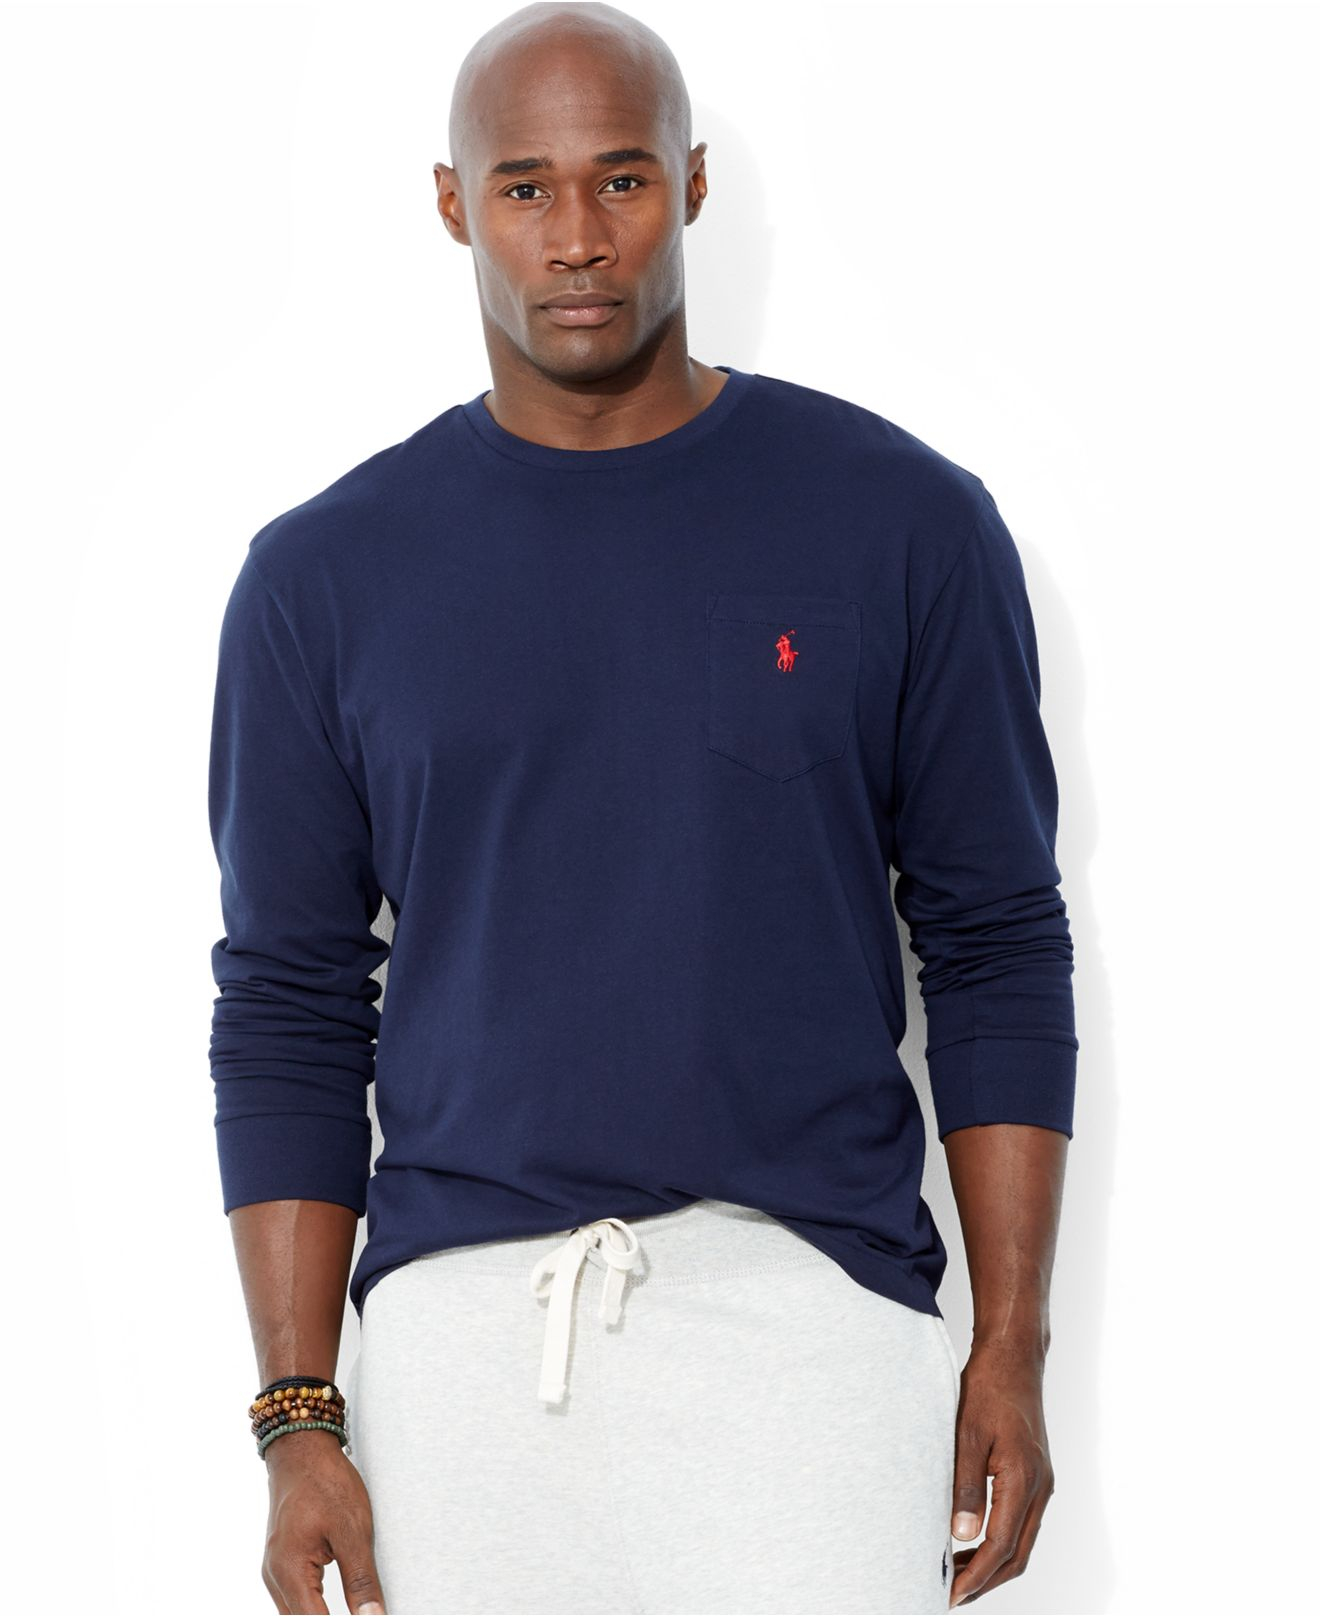 Polo ralph lauren big and tall crew neck pocket t shirt in for Big and tall quick dry shirts